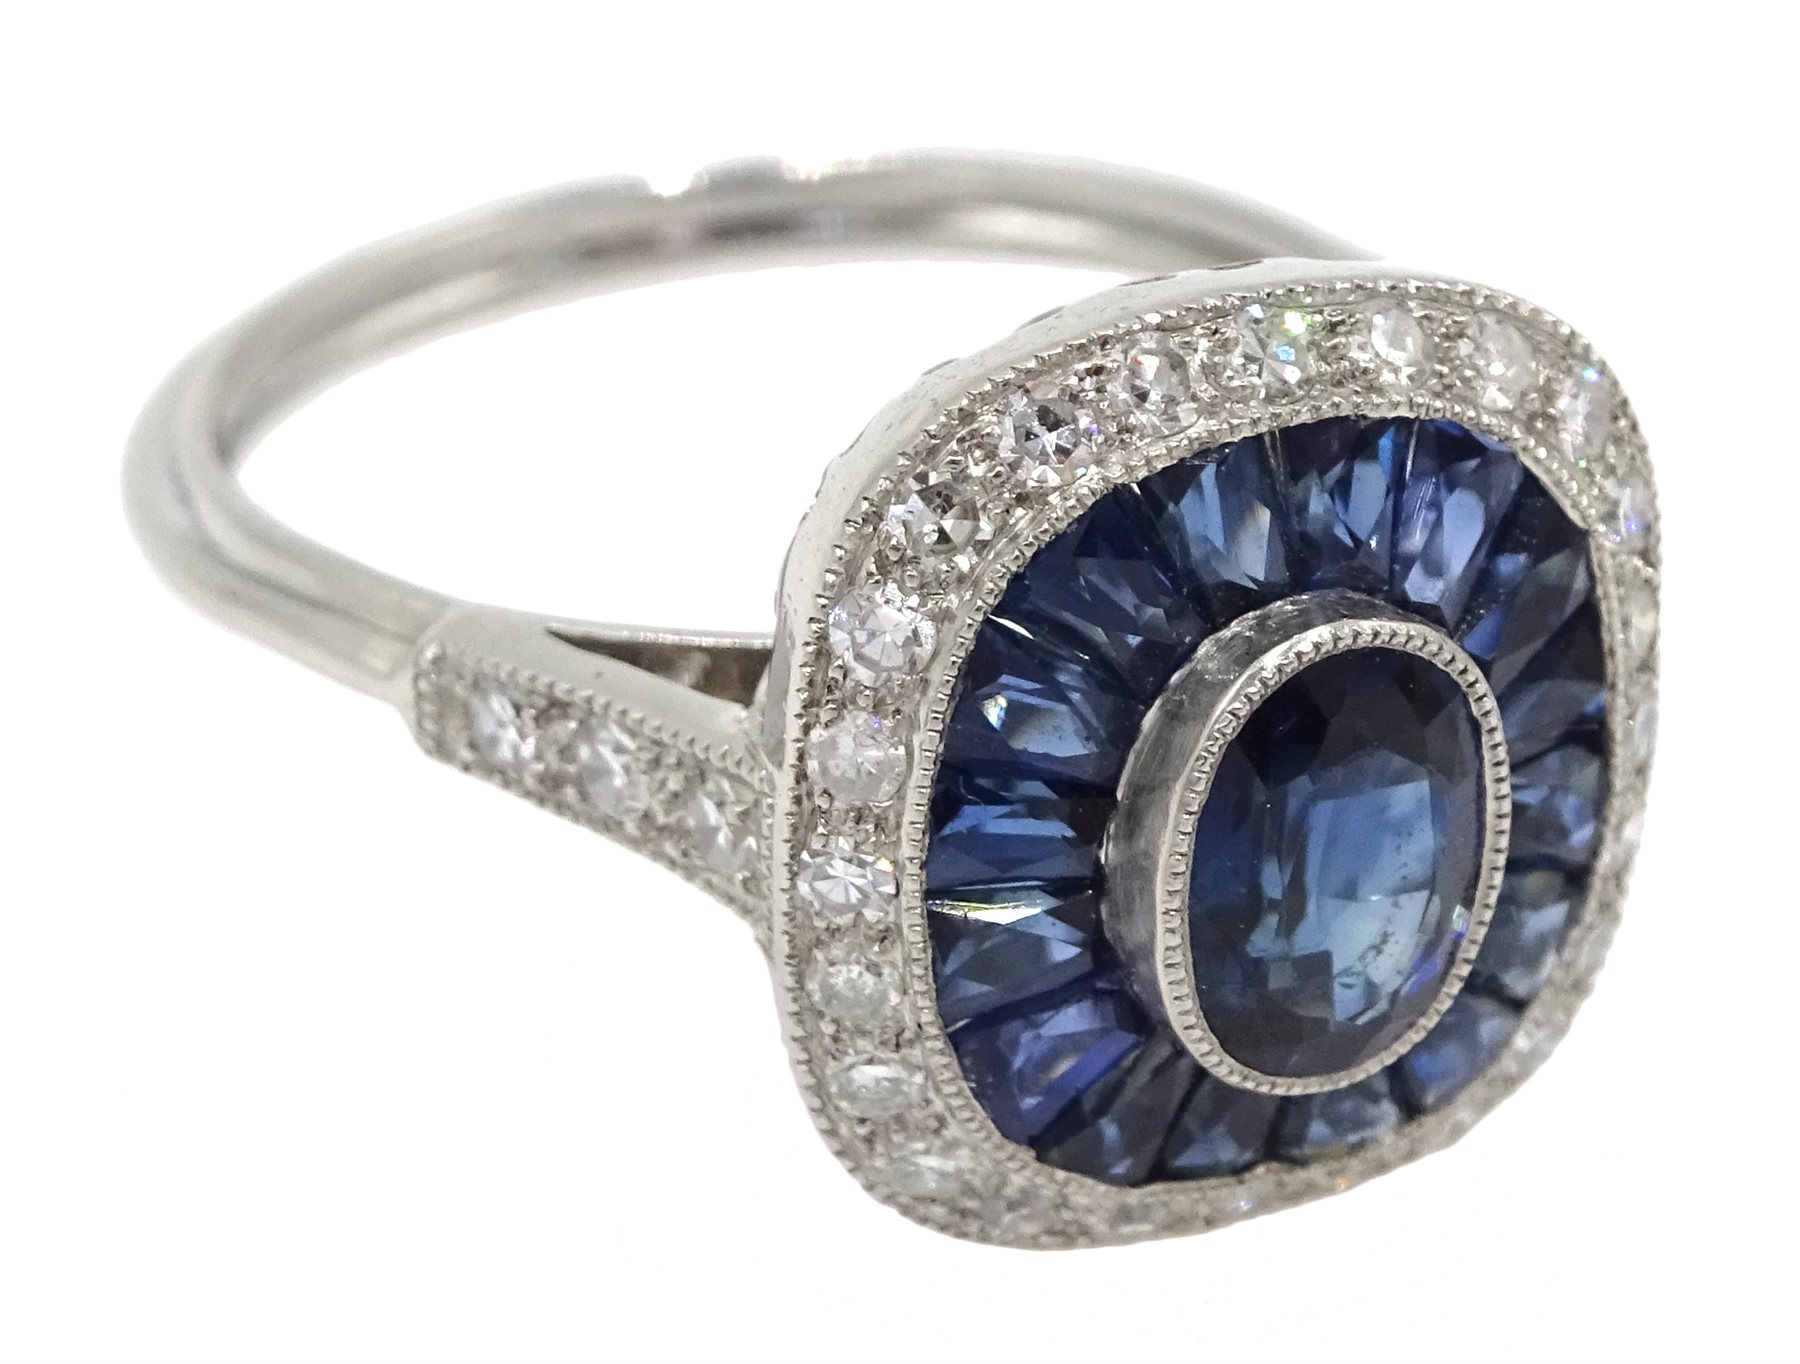 Platinum sapphire and diamond ring, the central oval sapphire surrounded by halo of calibre cut - Image 3 of 5